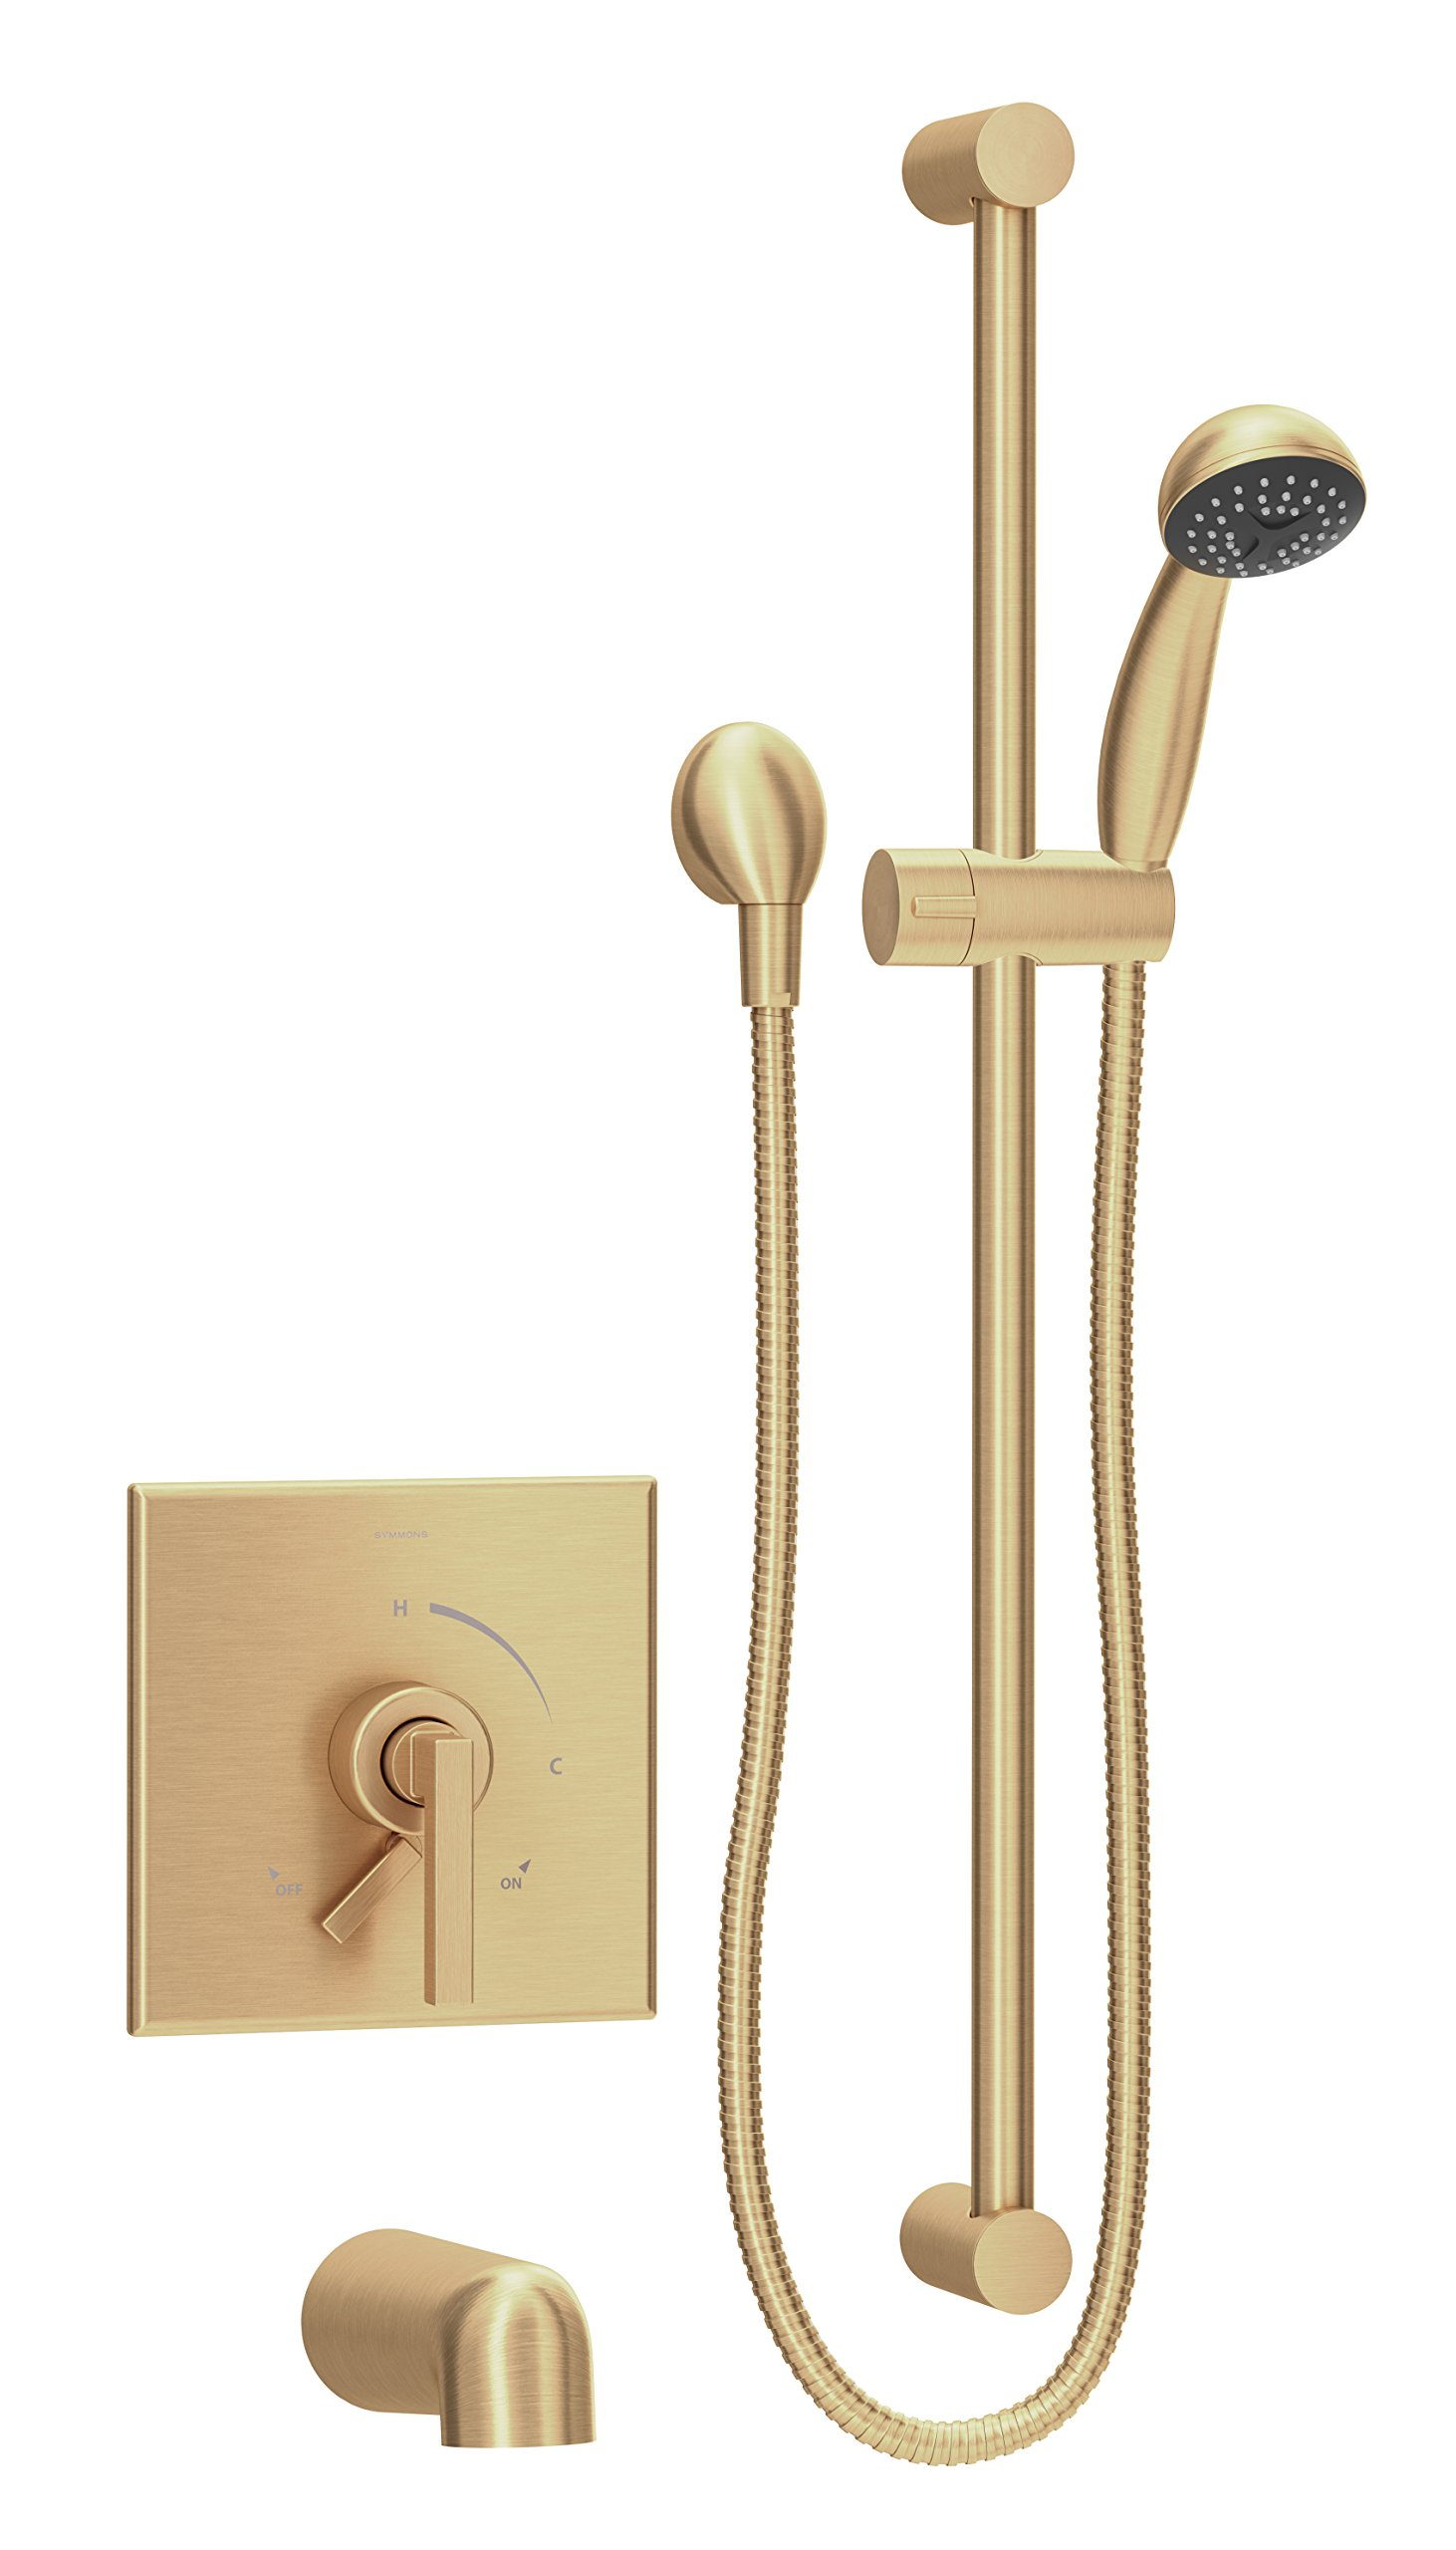 Symmons S-3604-H321-V-BBZ-1.5-TRM Duro Single Handle 1-Spray Tub and Hand Shower Trim in Brushed Bronze - 1.5 GPM (Valve Not Included)